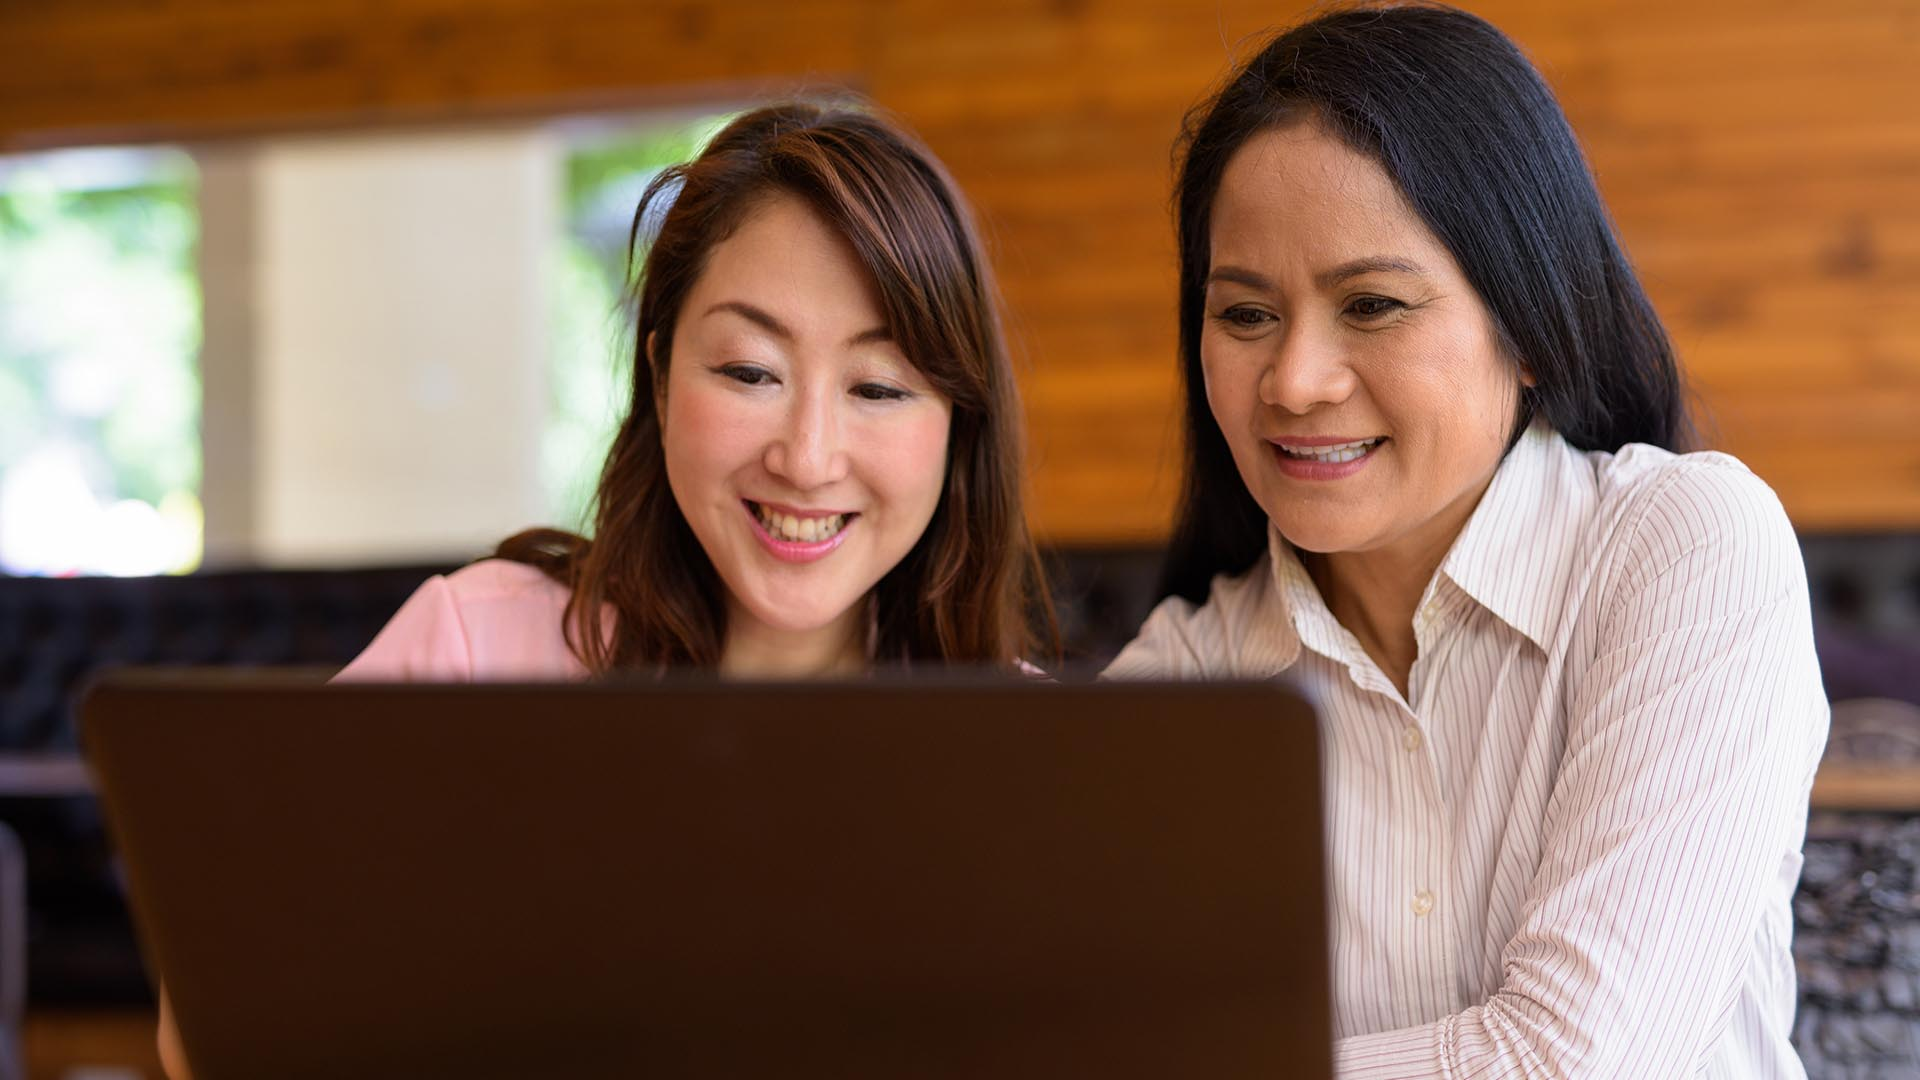 Photo of two women looking at a laptop screen.